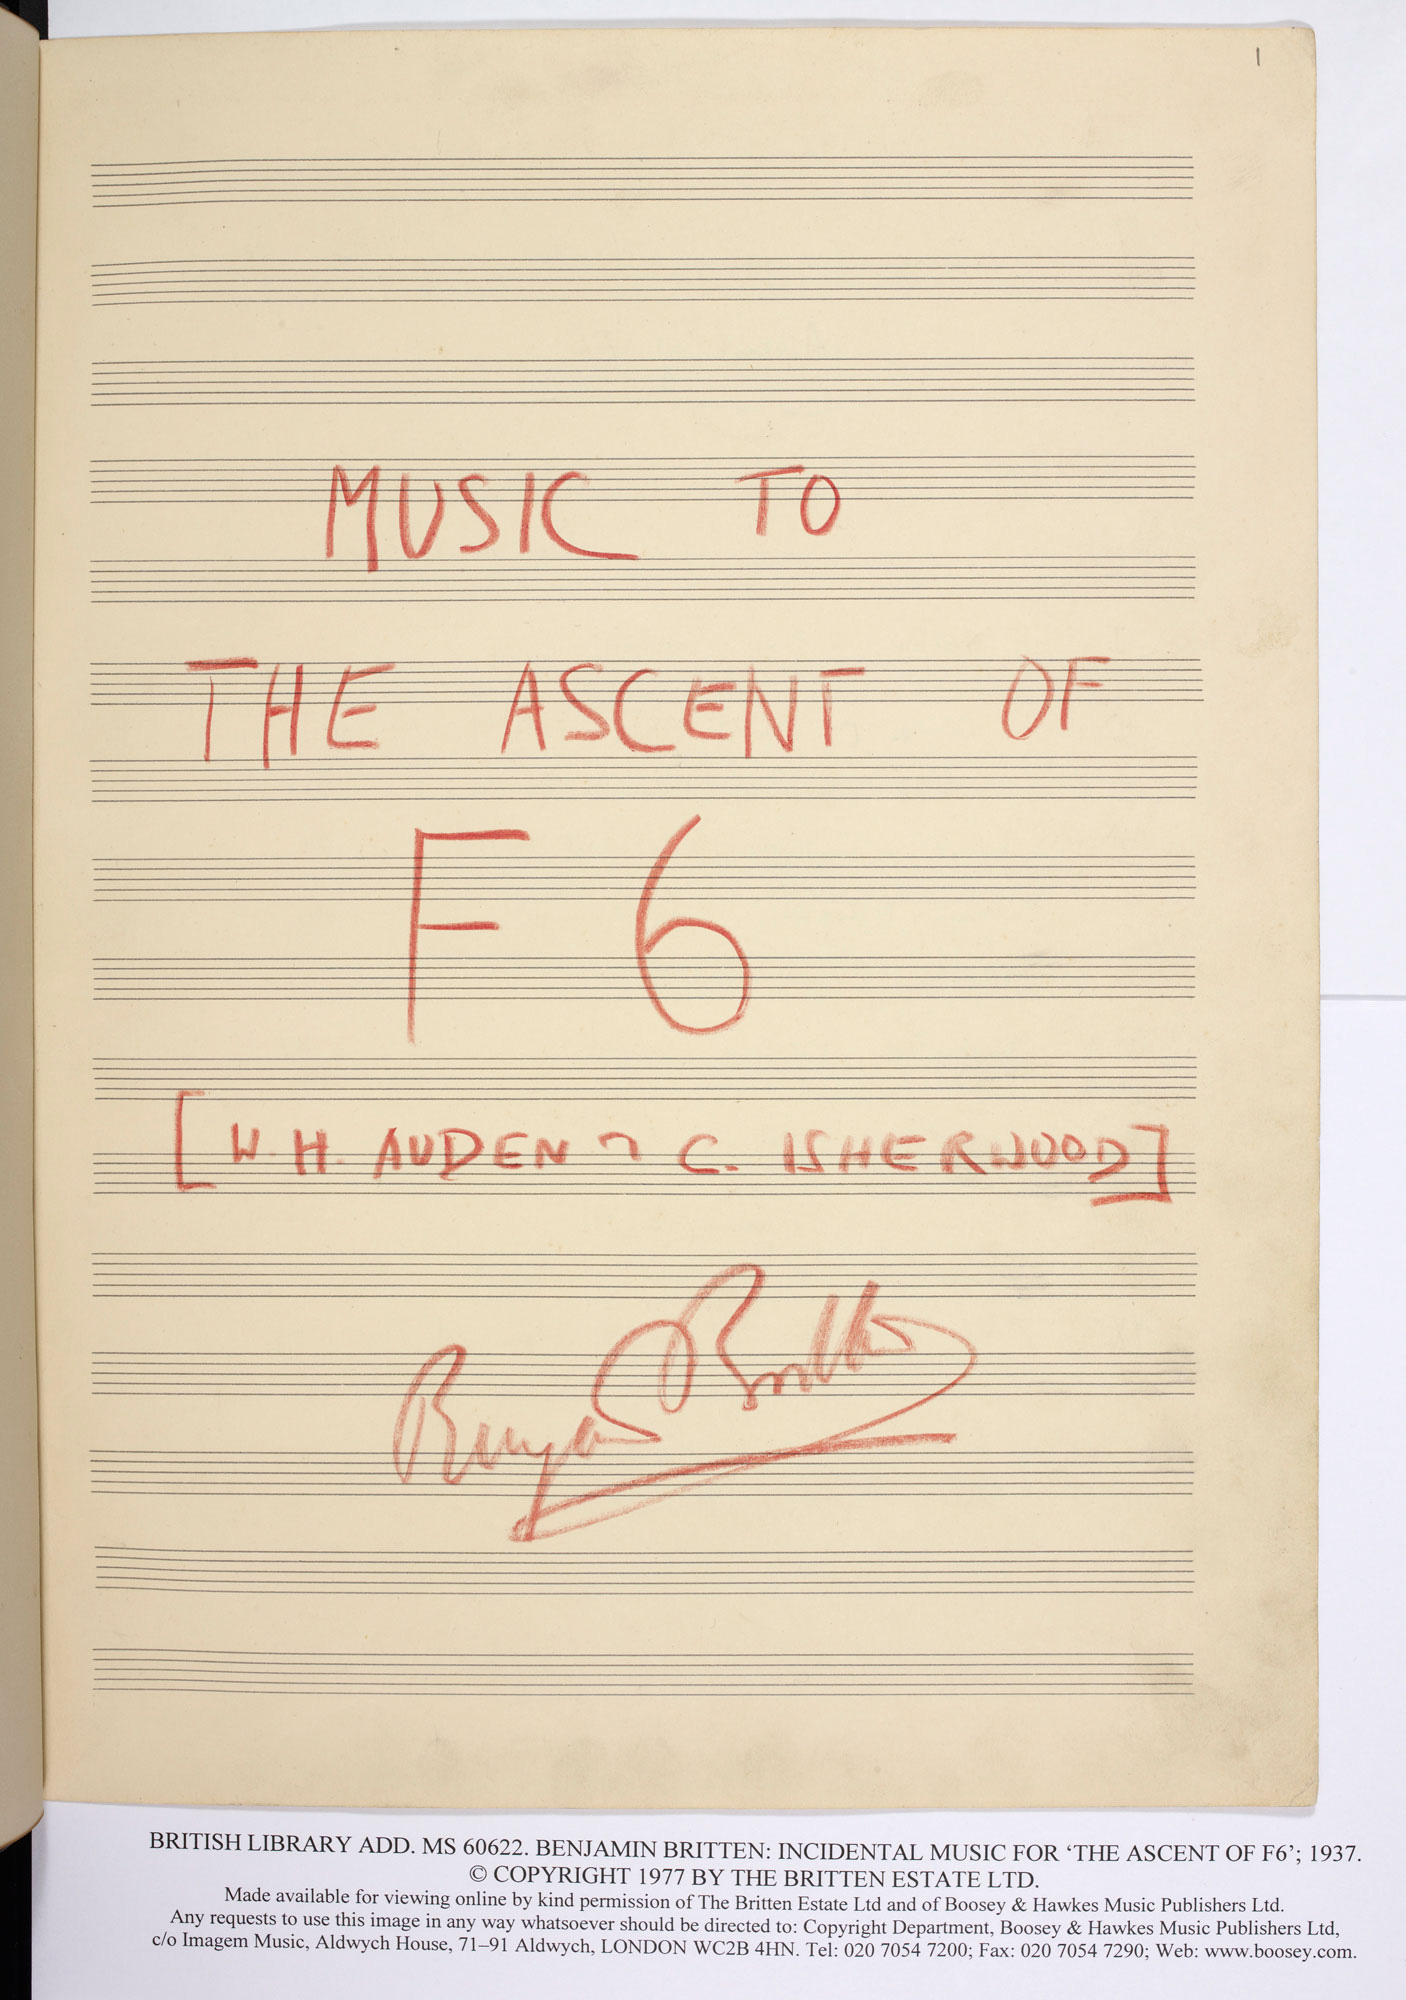 Benjamin Britten's music for Auden and Isherwood's play The Ascent of F6